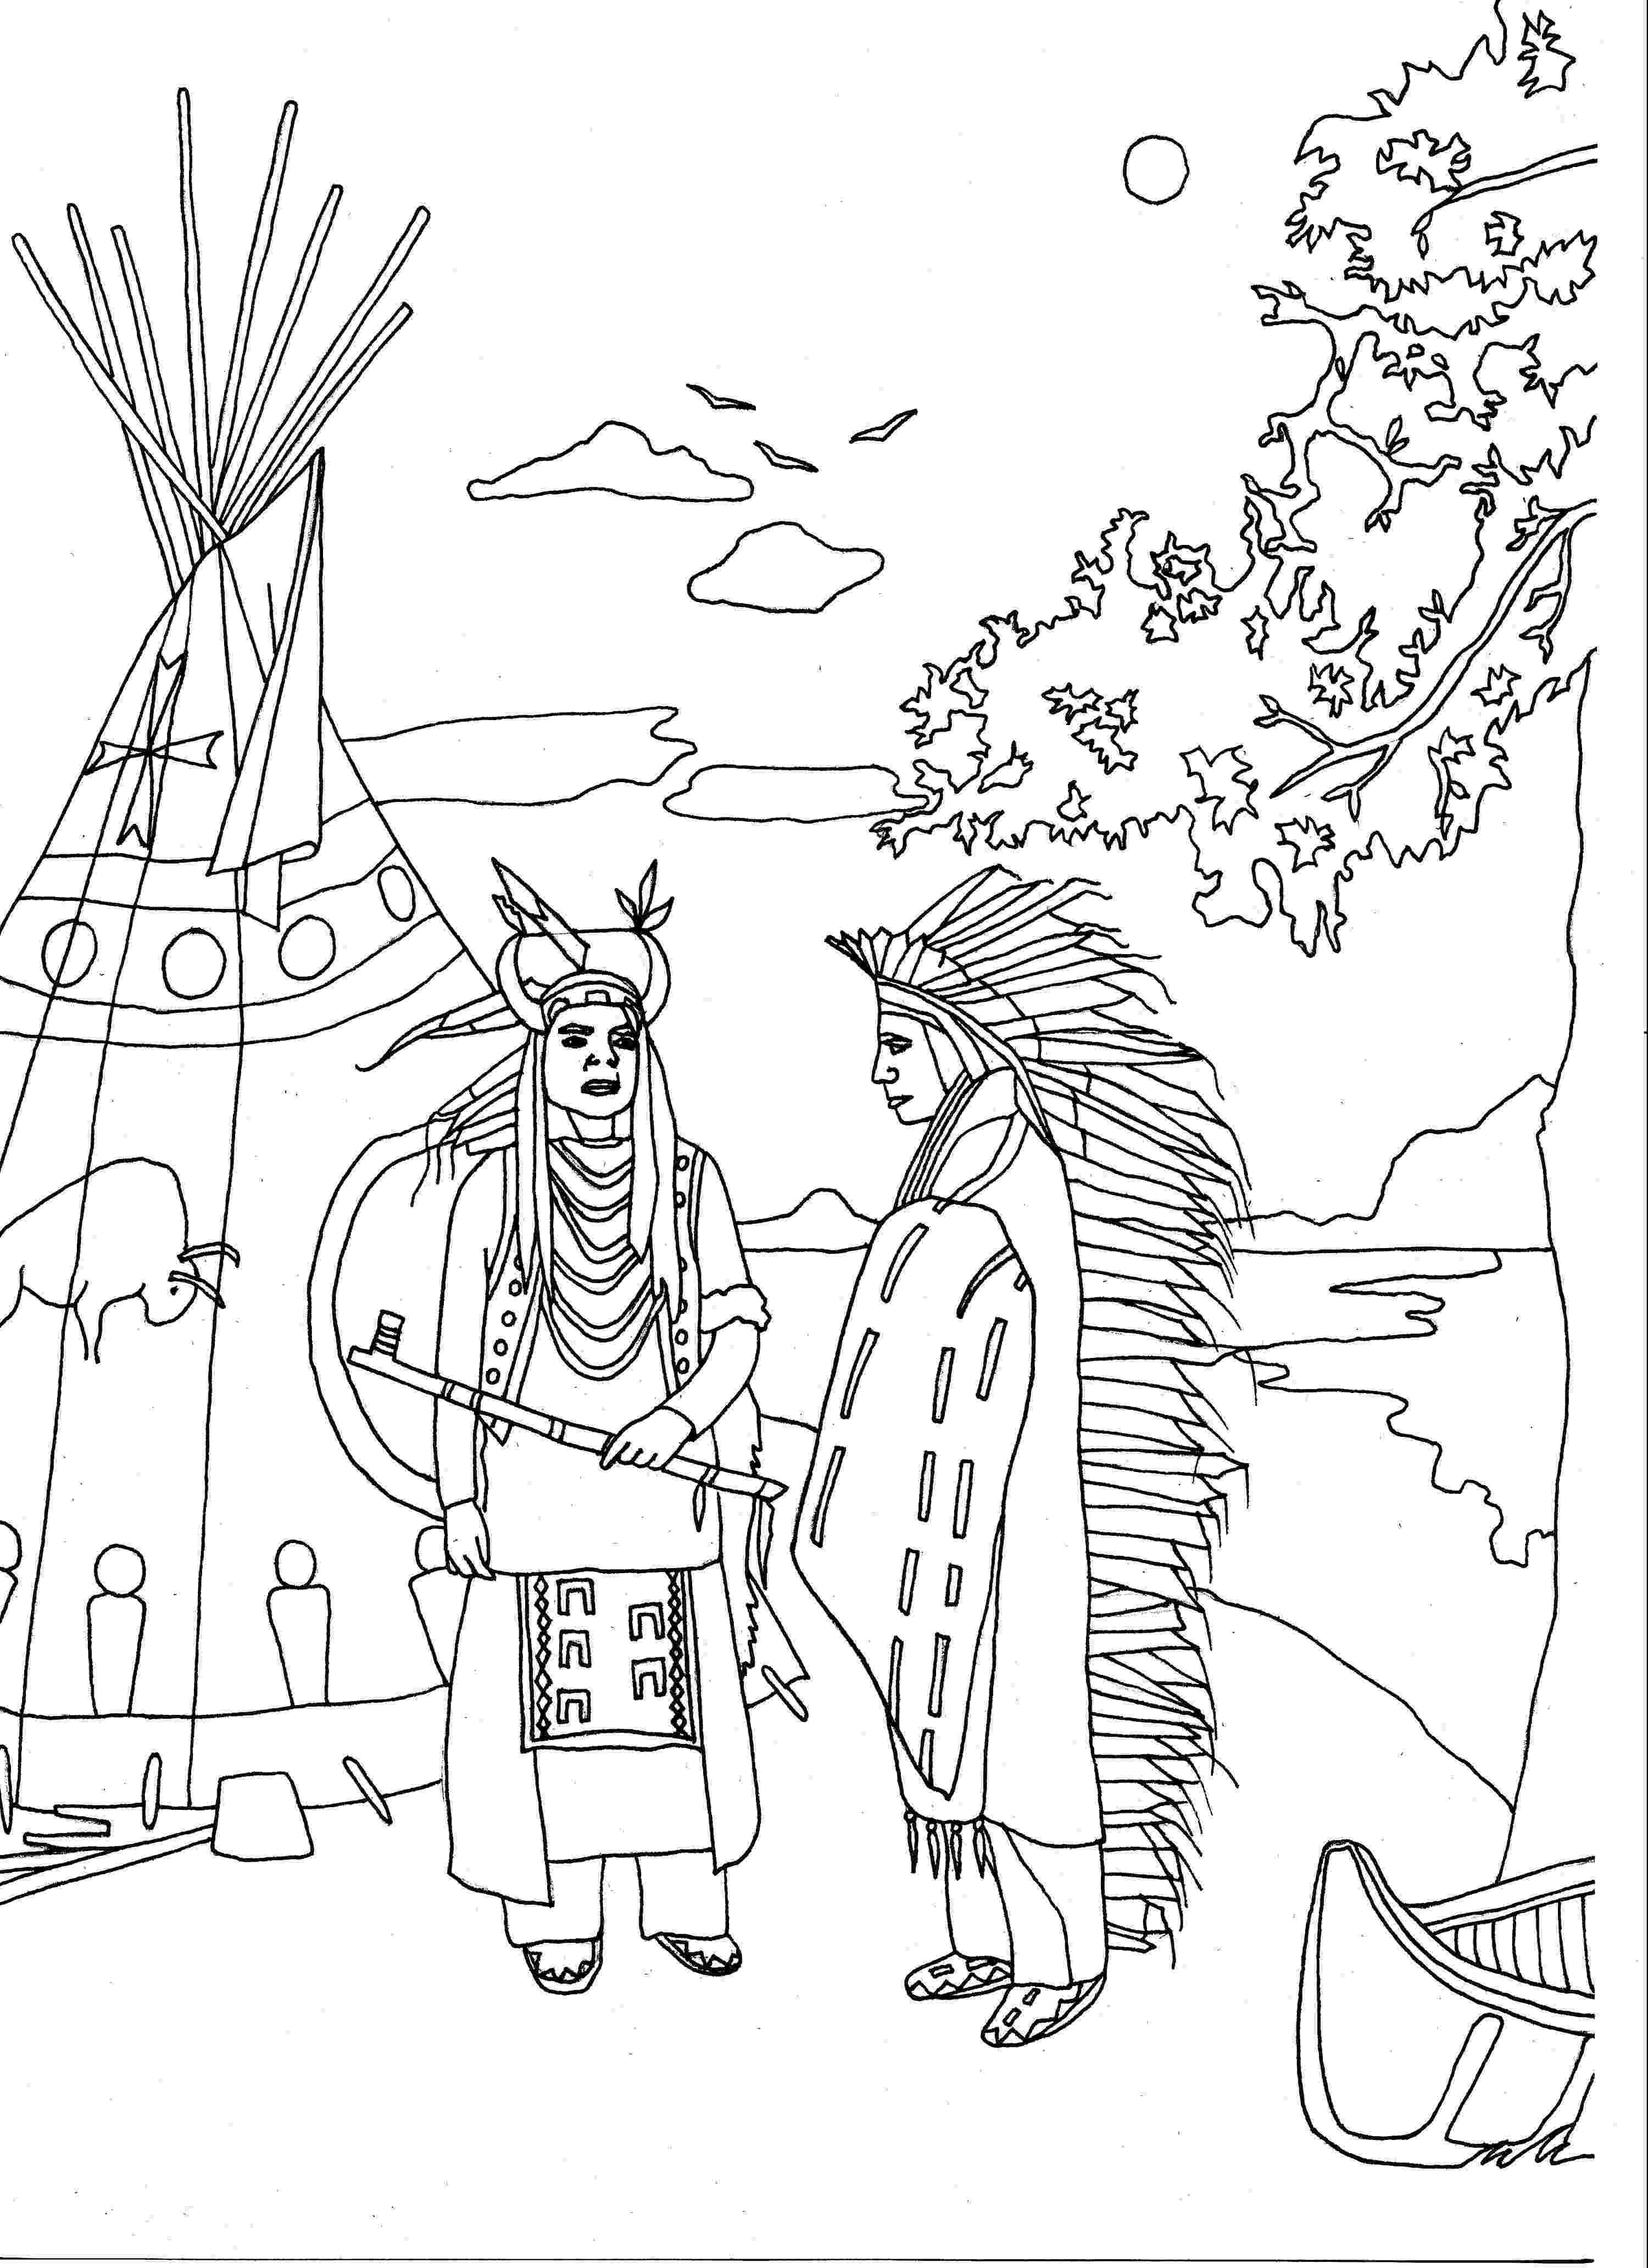 free printable native american coloring pages free coloring page coloring adult two native americans by pages free native coloring printable american